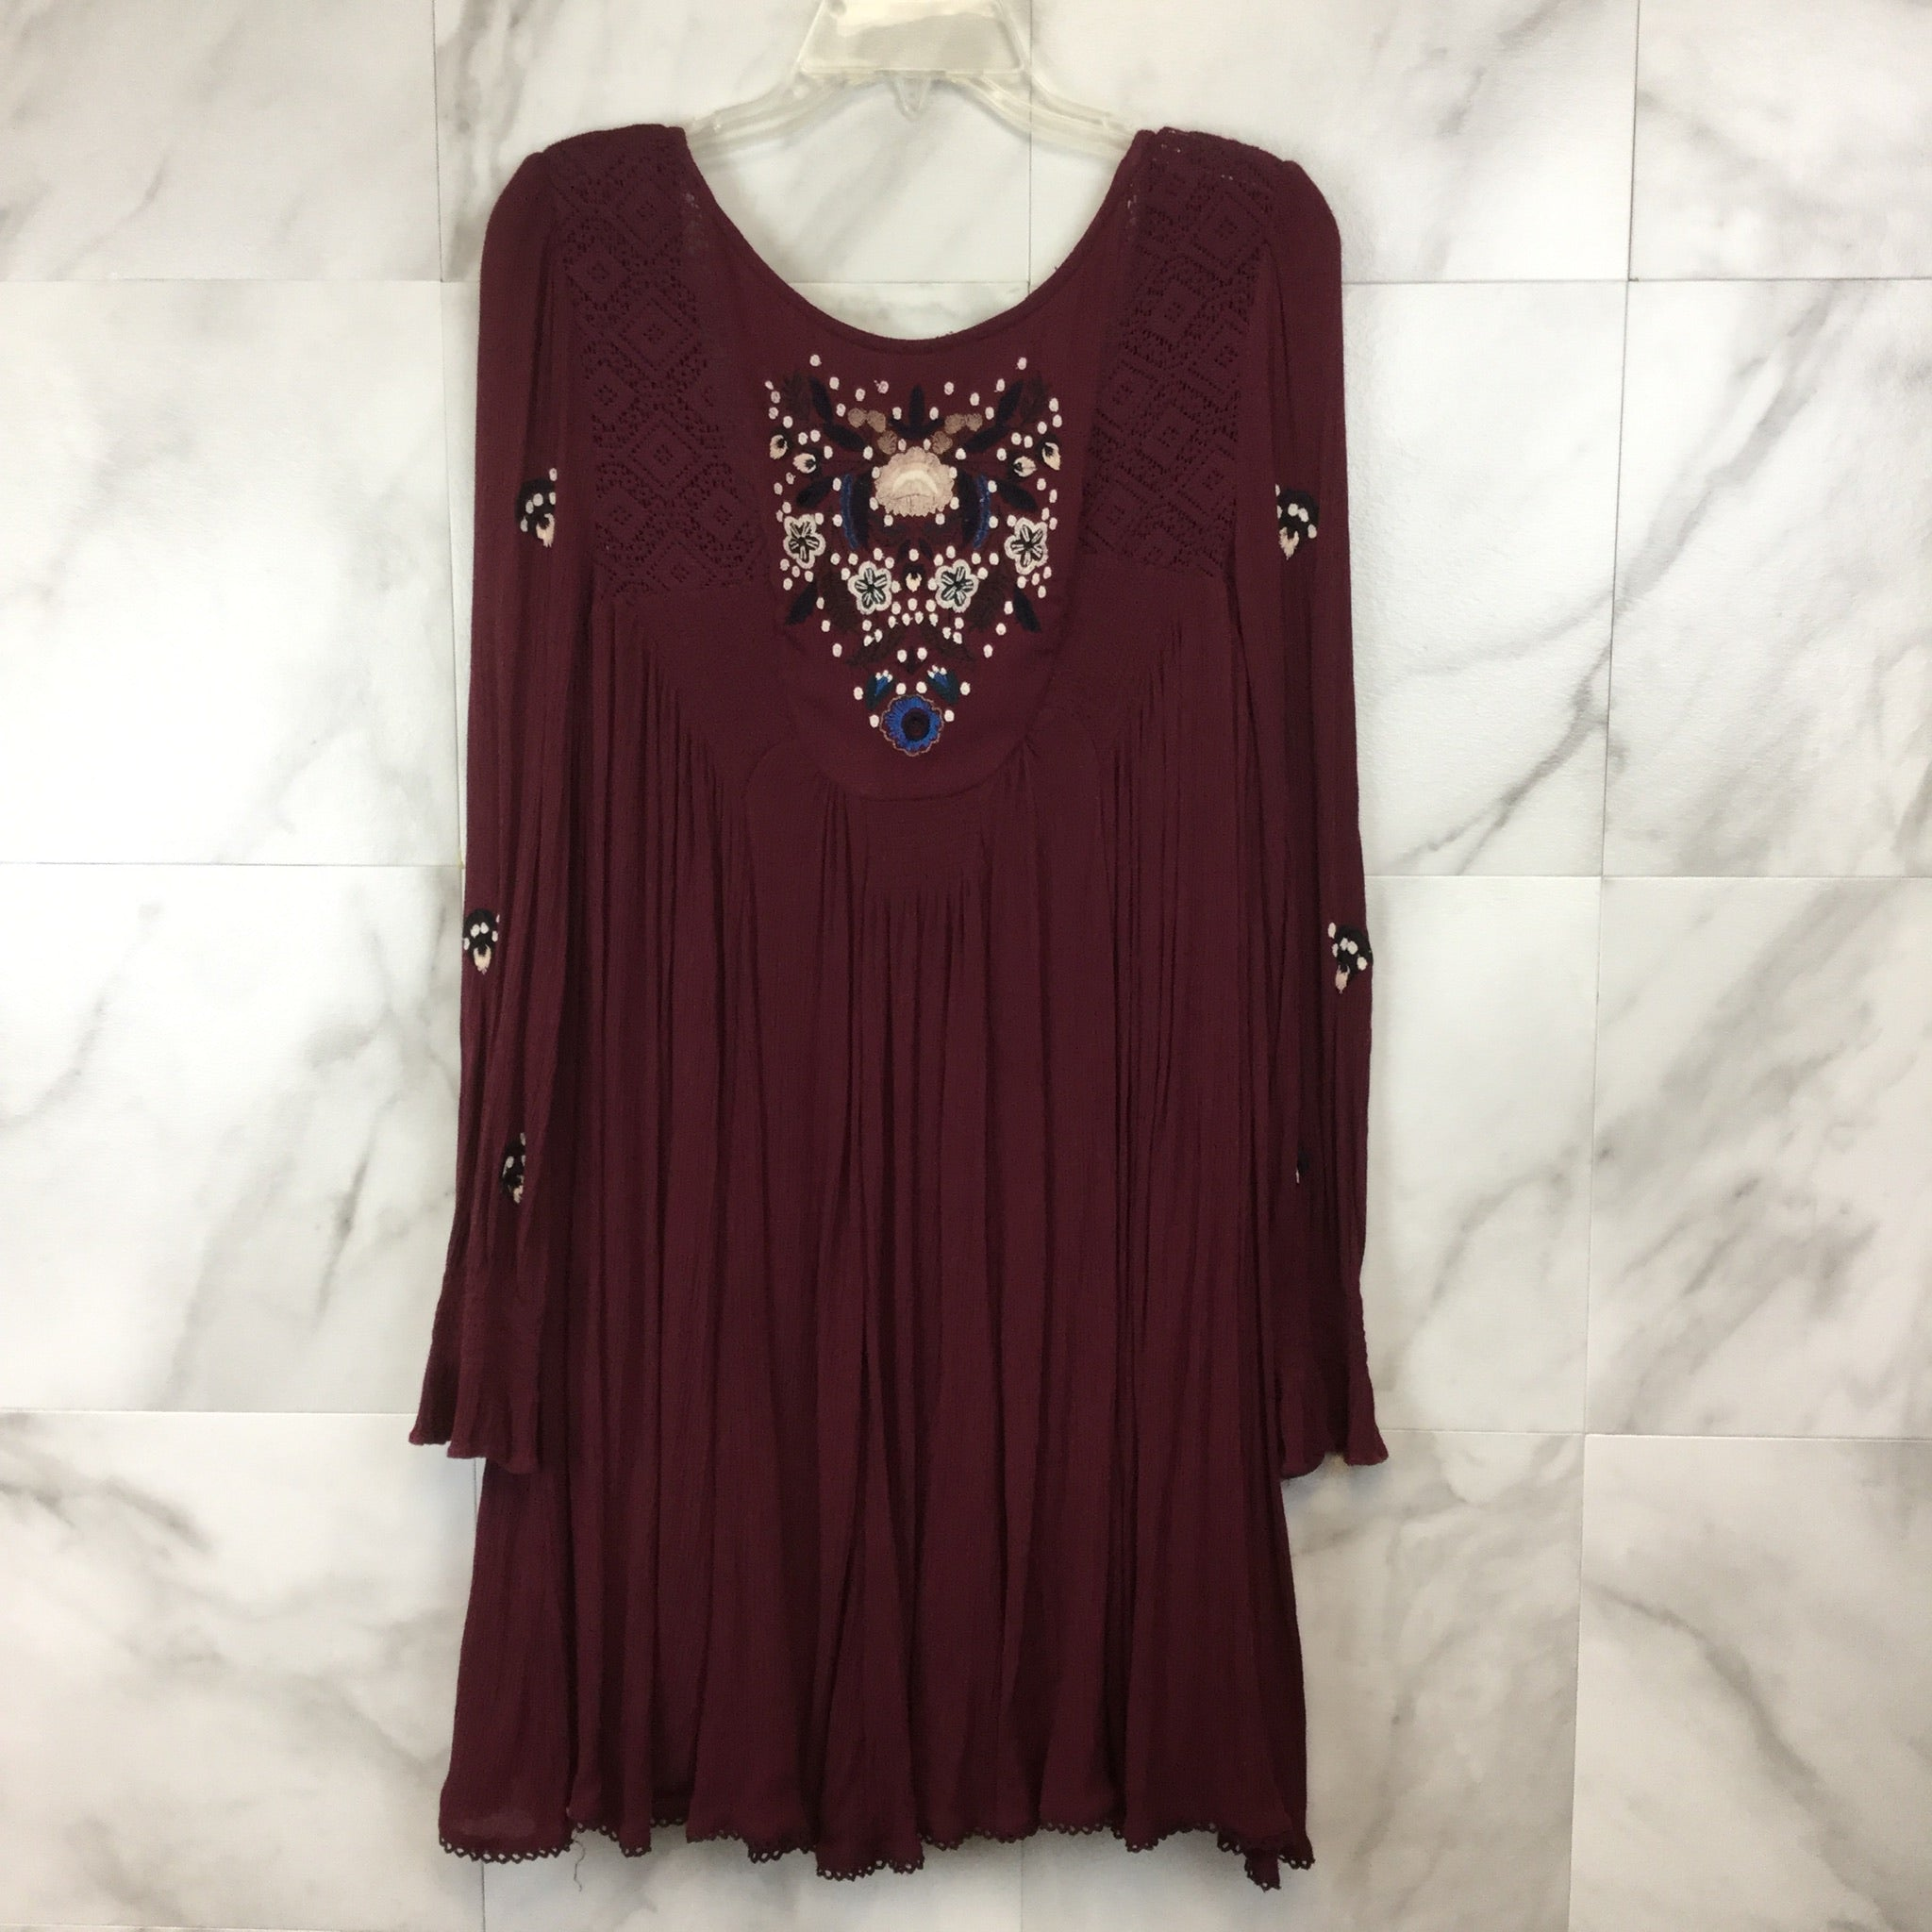 Free People Embroidered Mini Dress - size M